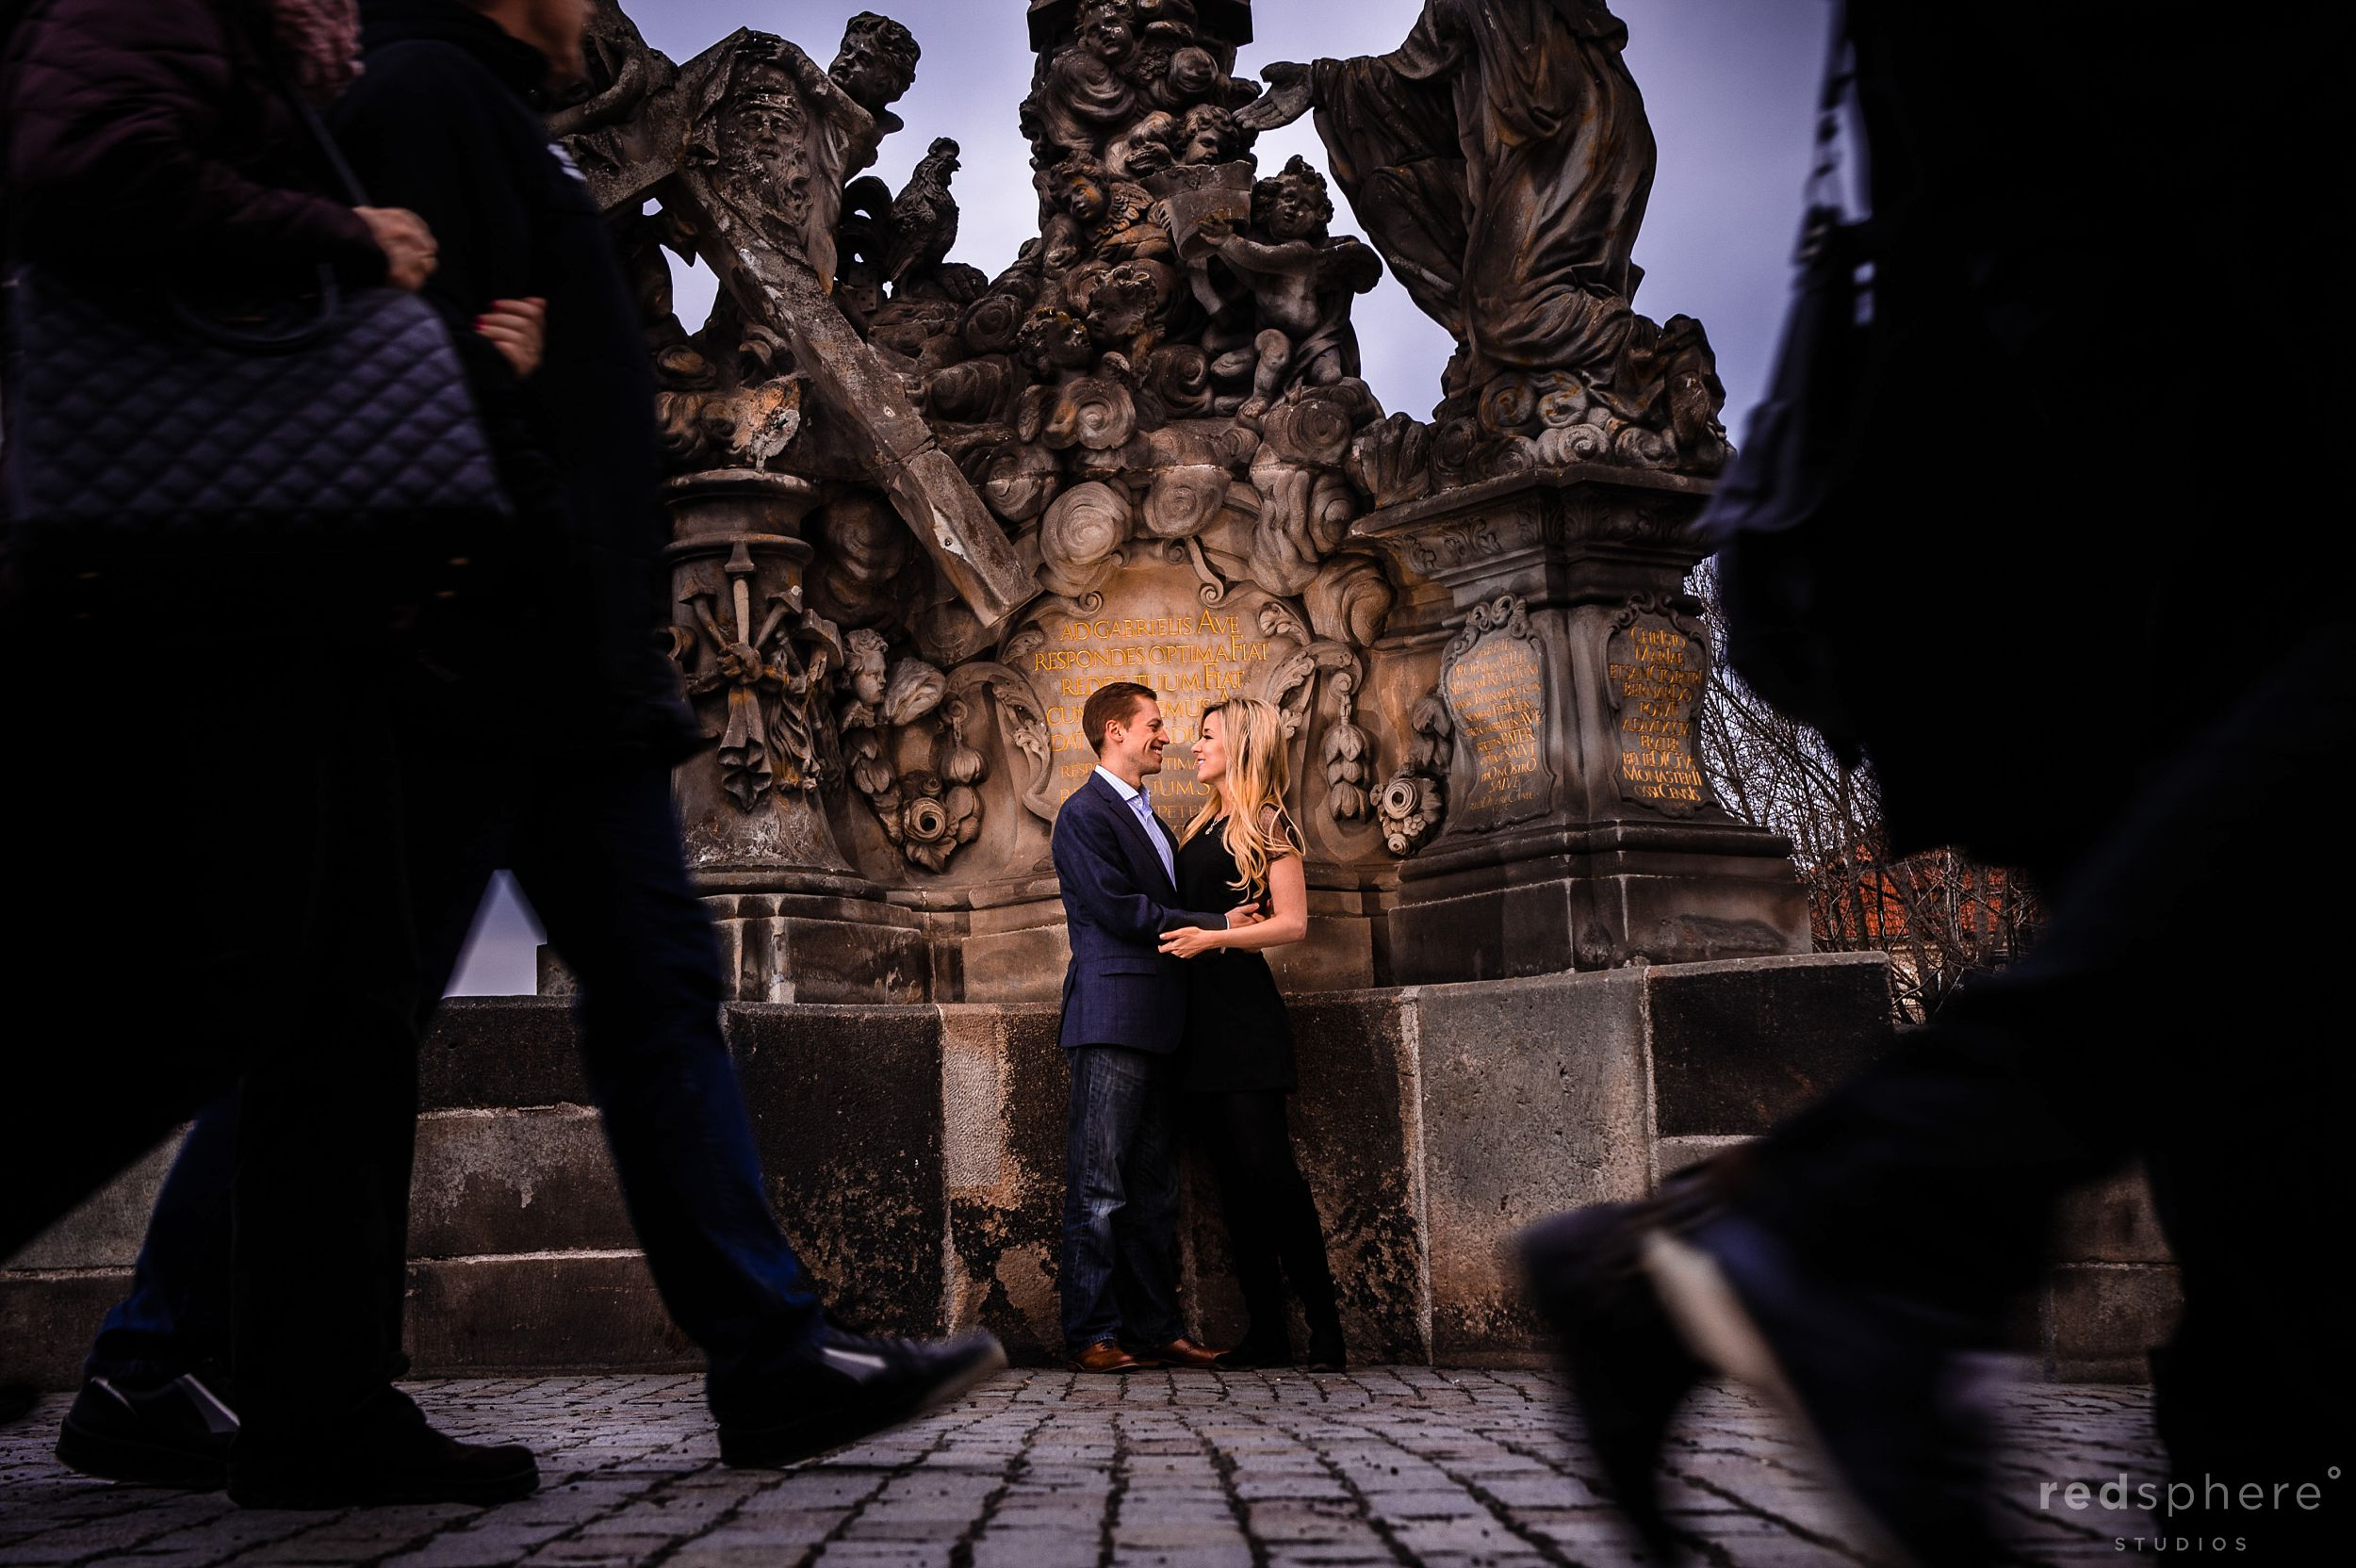 Couple Gazes Into Each Other's Eyes During Engagement at Charles Bridge, Prague